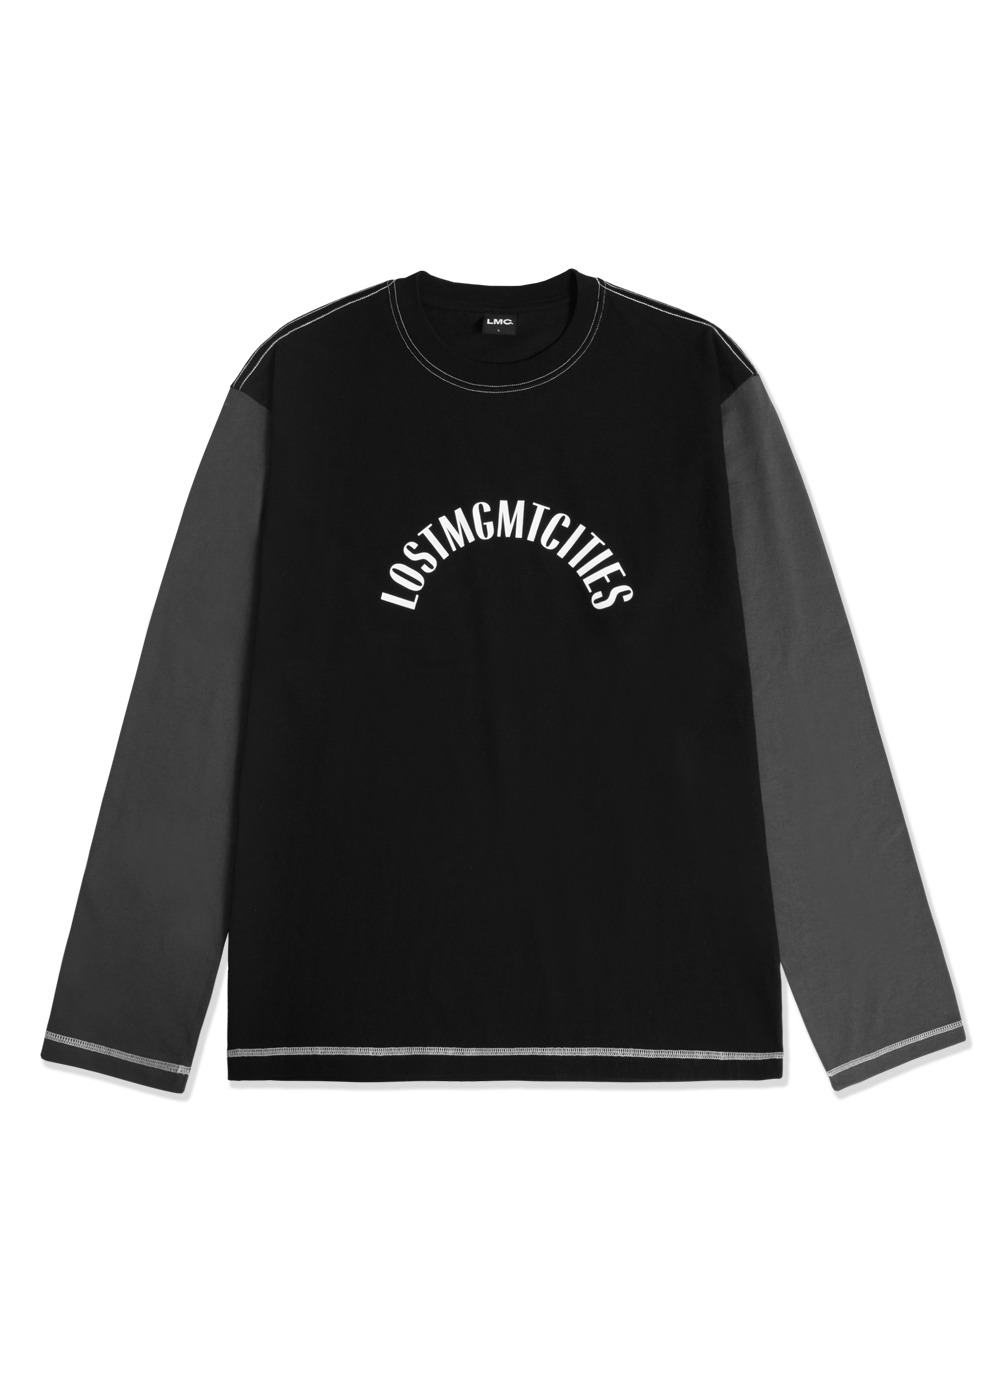 LMC TWO TONE ARCH LONG SLV TEE black